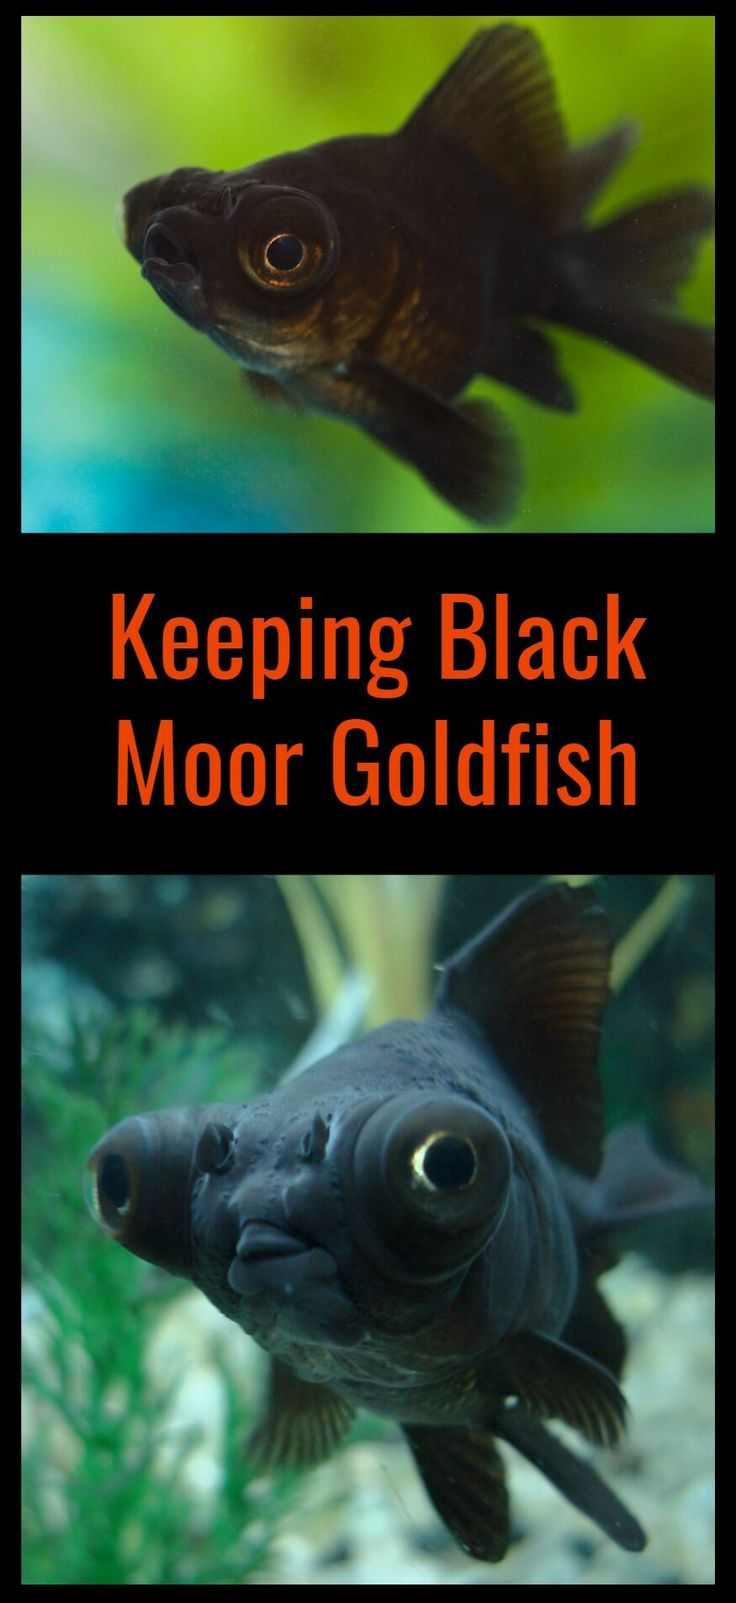 Black moors are fantastic little fish to keep, but there are some simple ground rules you need to understand first. Click here to read the complete beginners guide to keeping black telescope goldfish as pets.